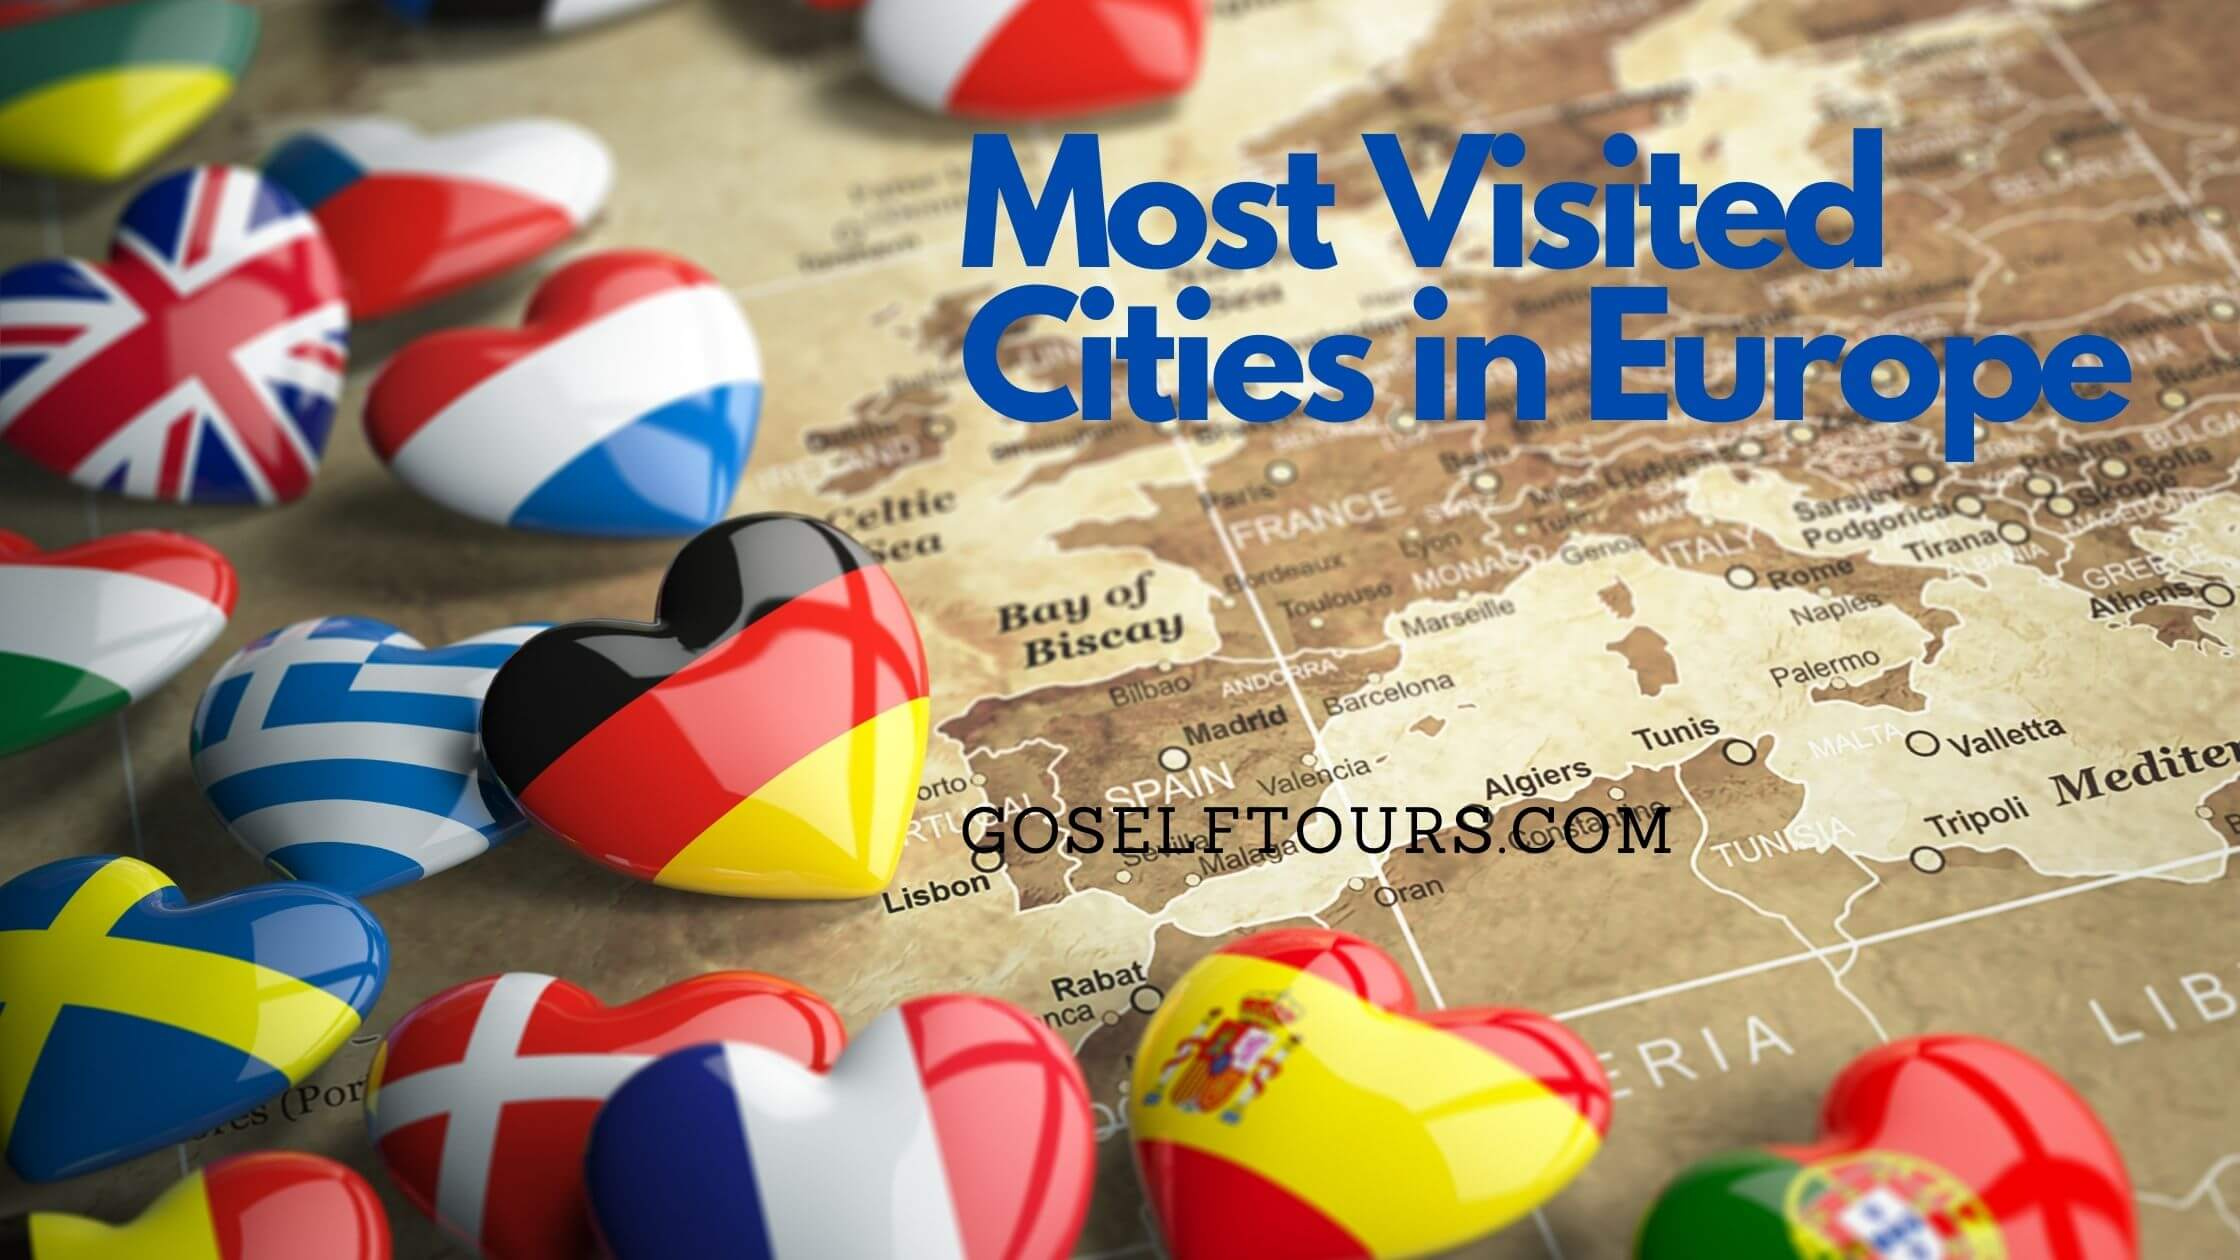 Most Visited Cities in Europe